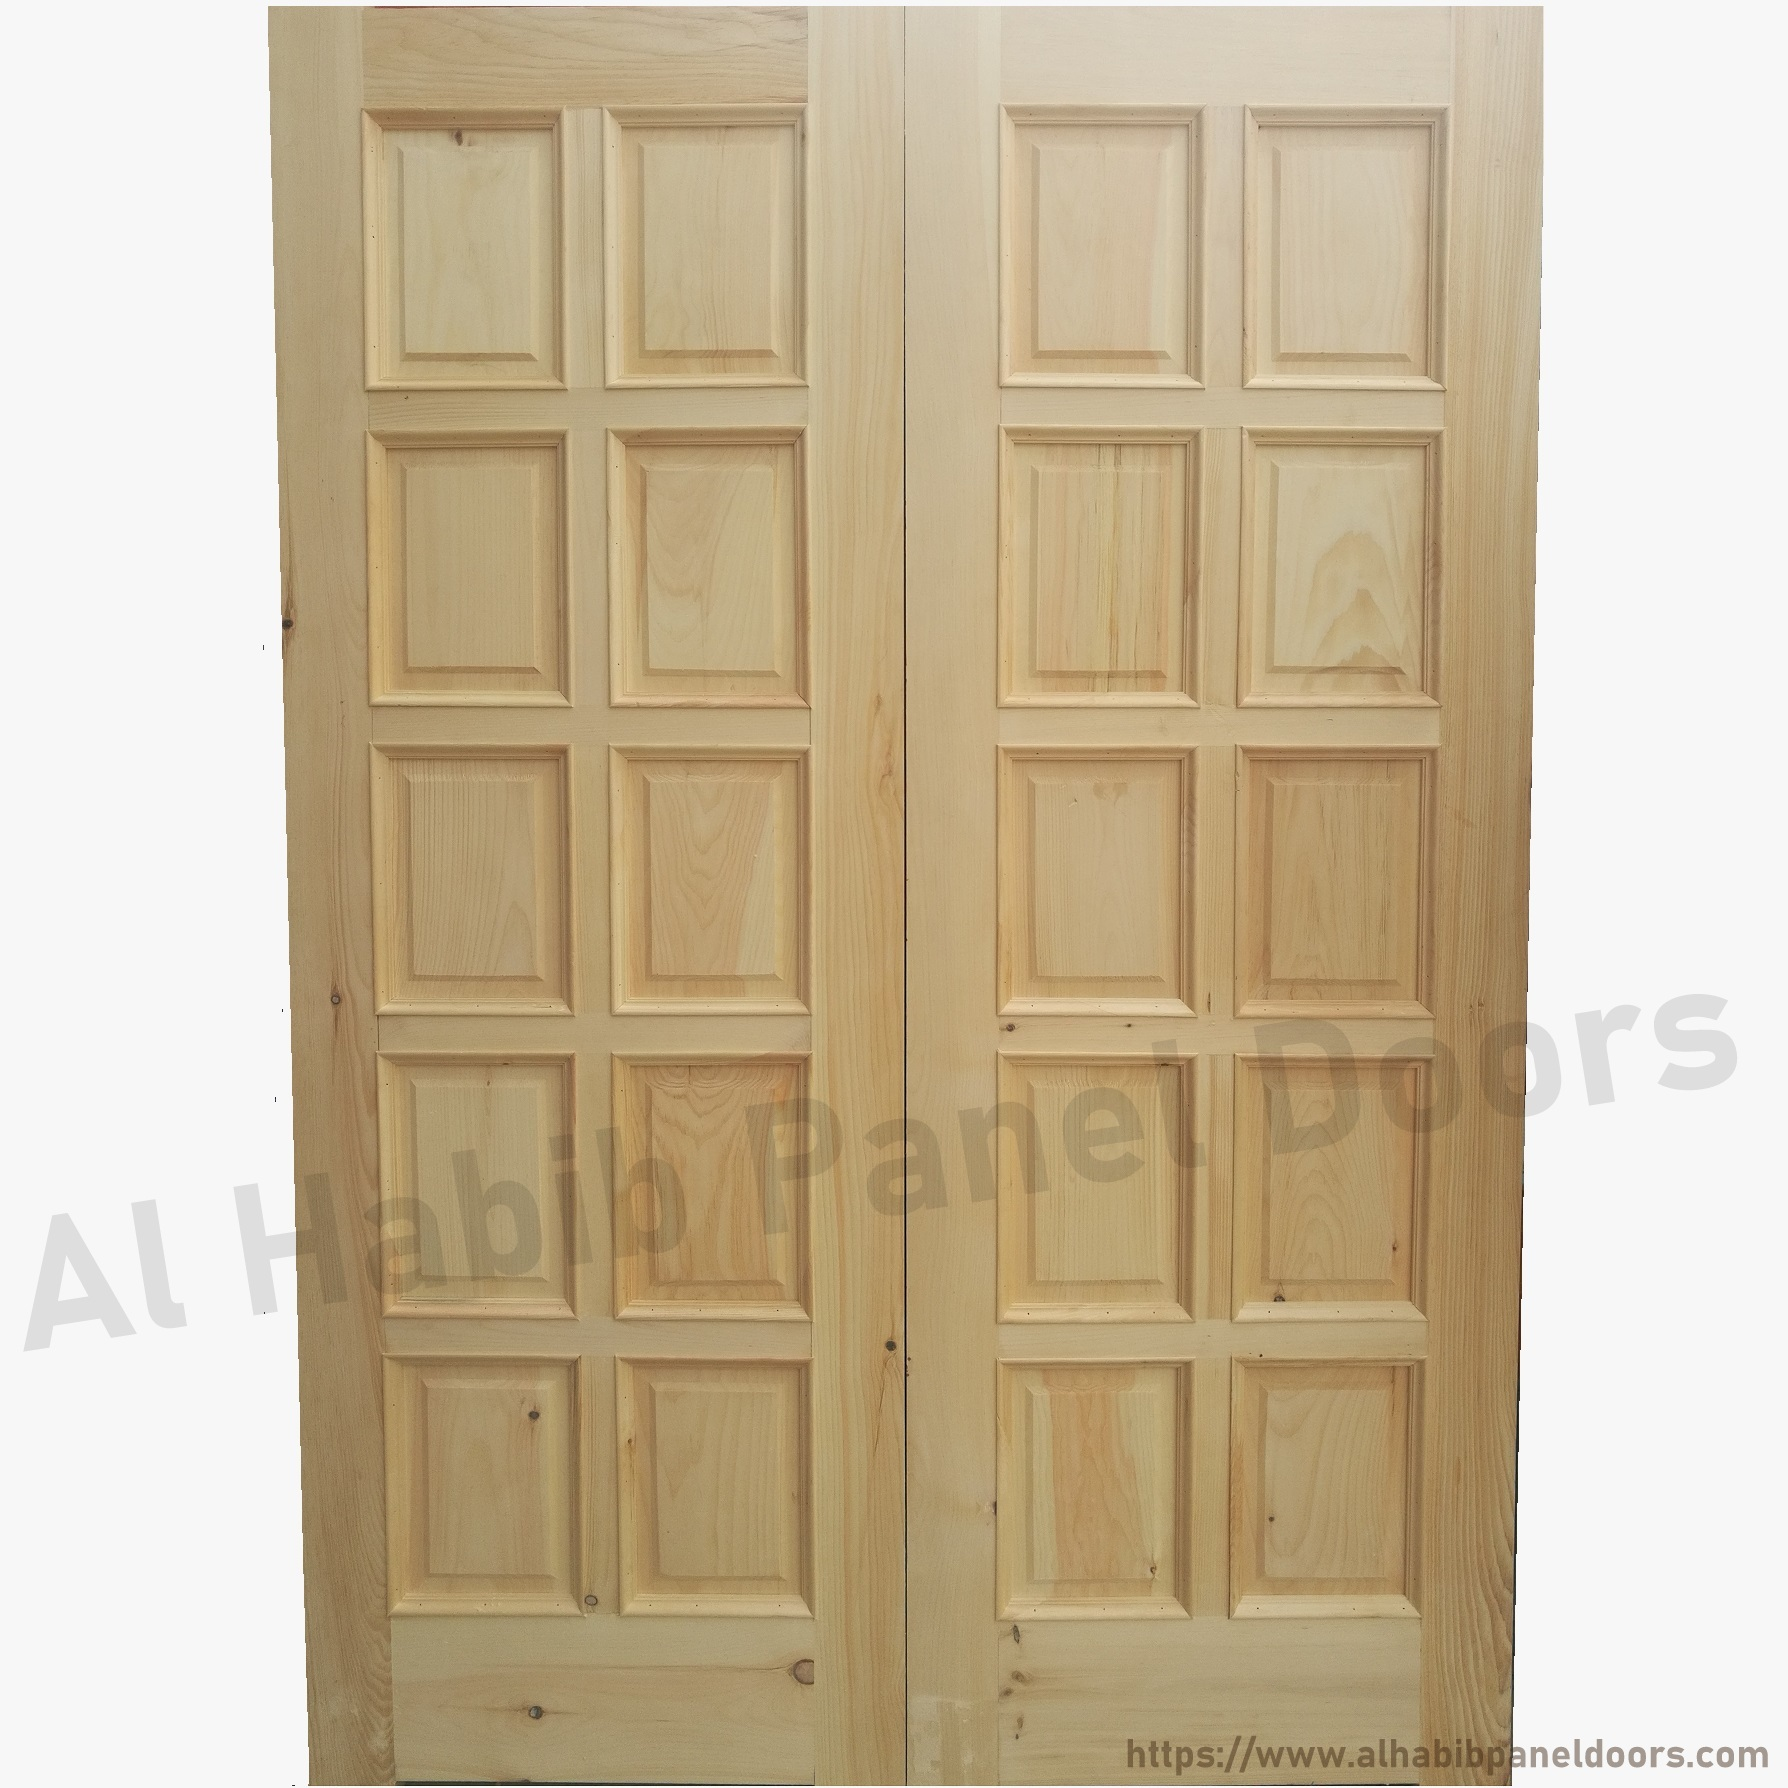 Diyar solid wood main double door hpd412 main doors al for Big main door designs